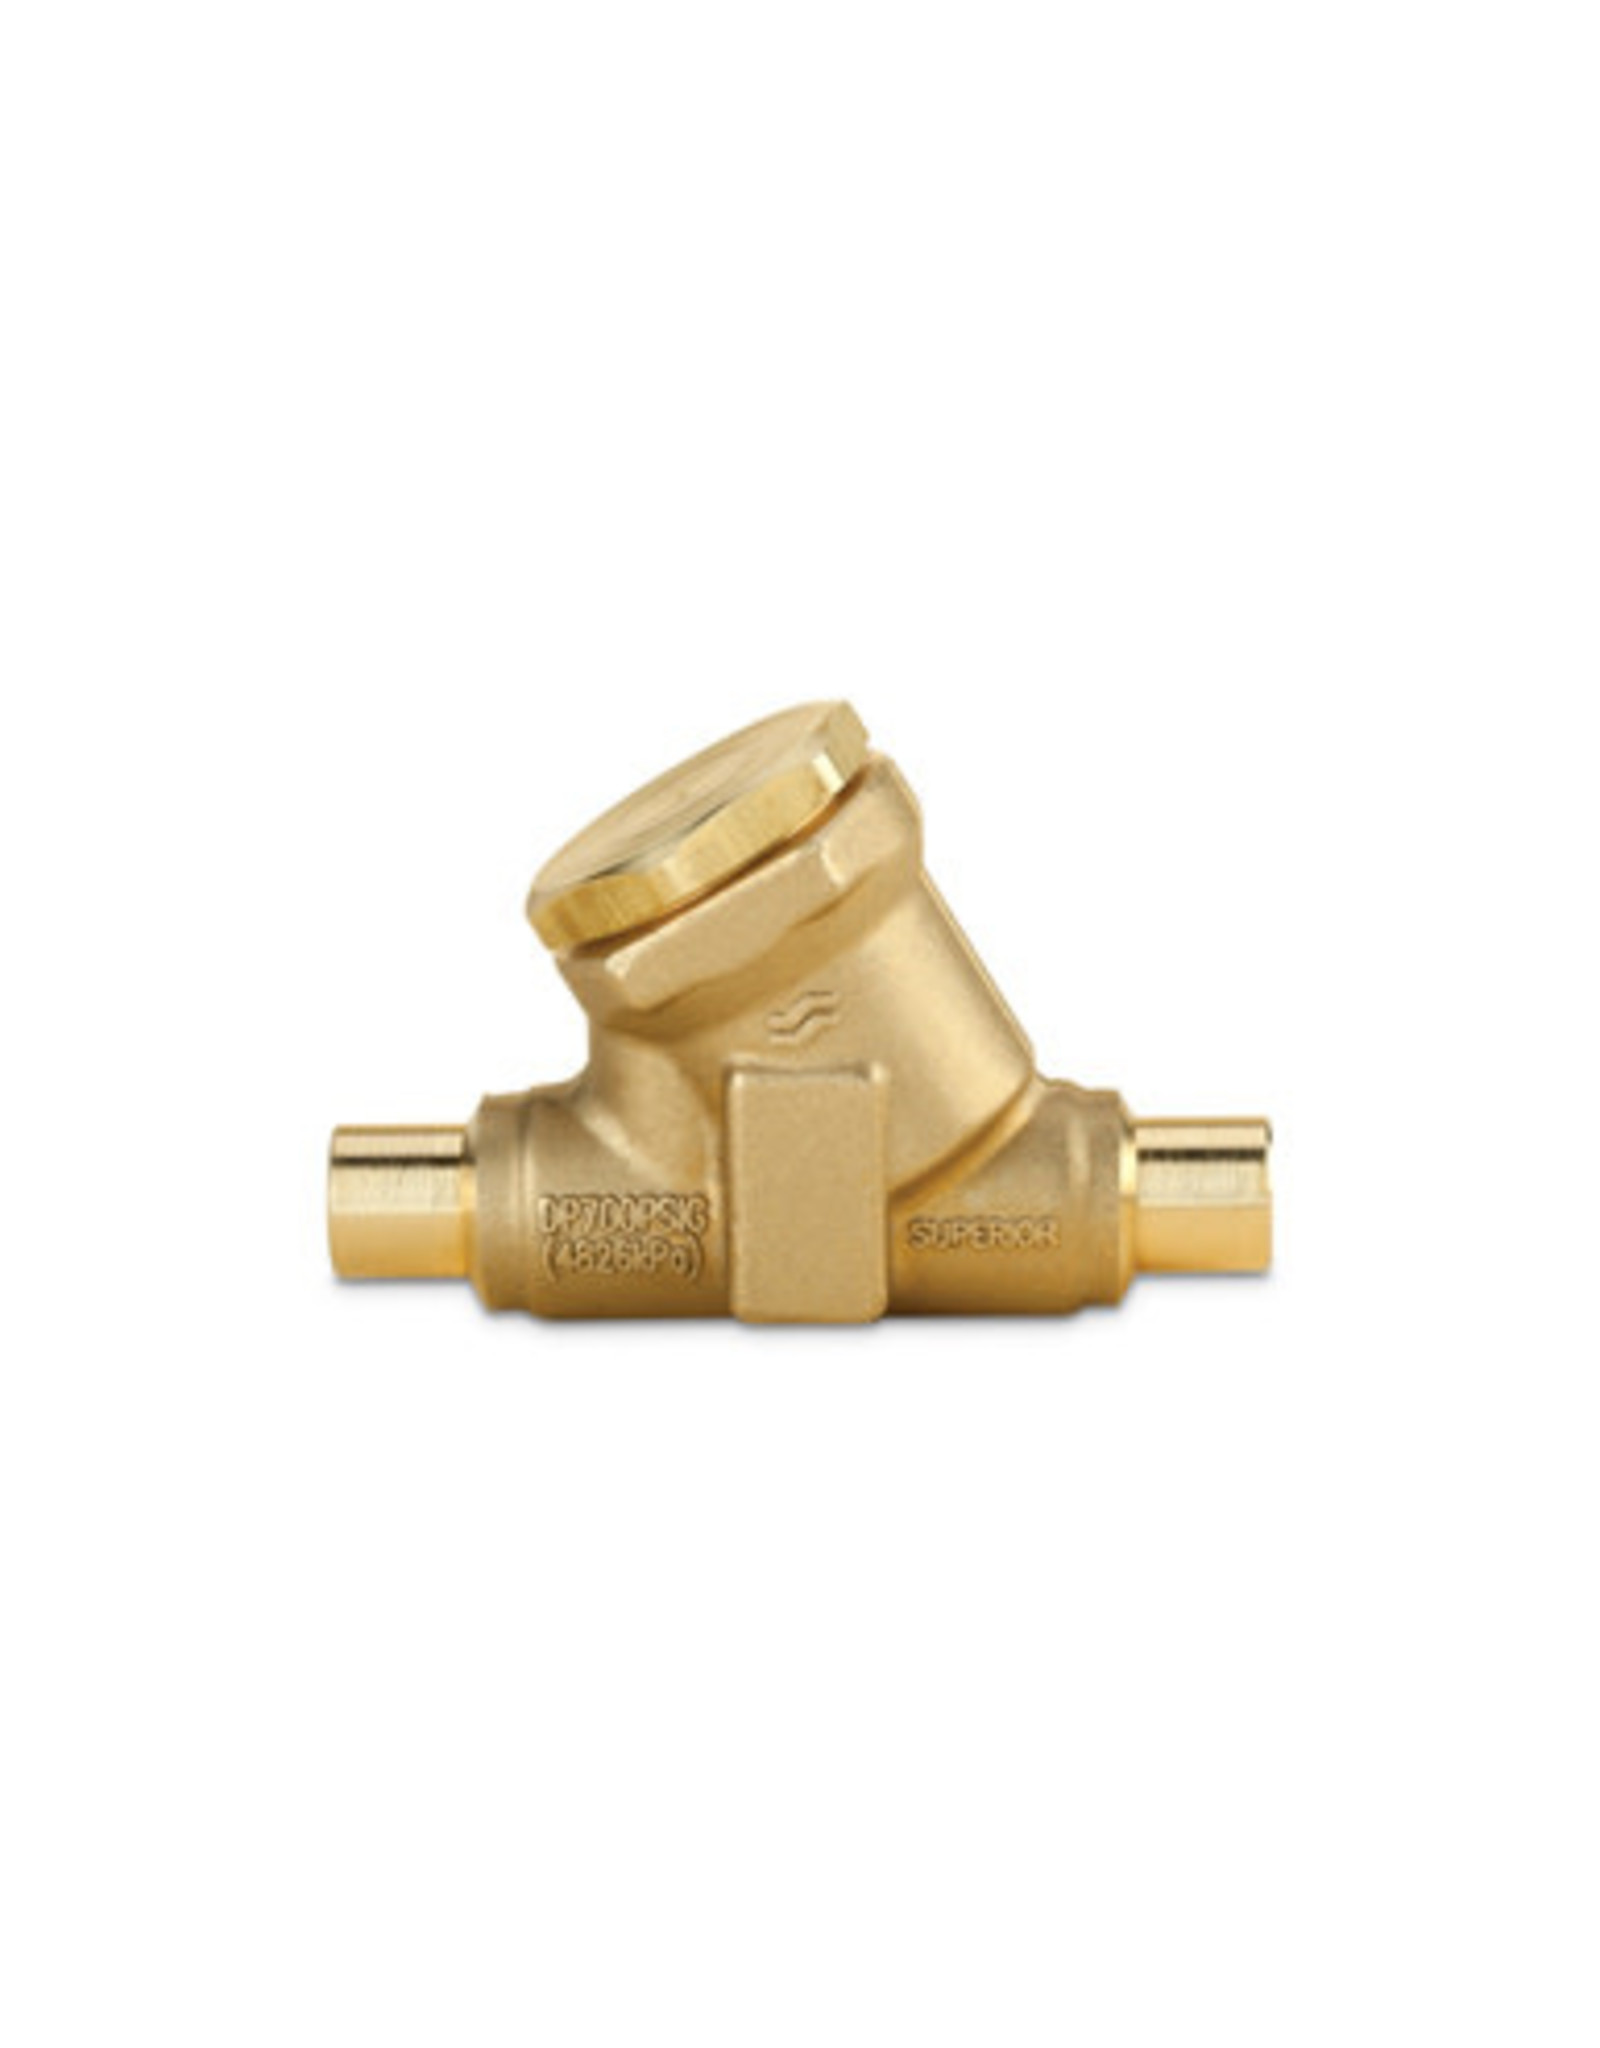 Superior HVACR HV Check Valves, 10lb Spring - 802B Series